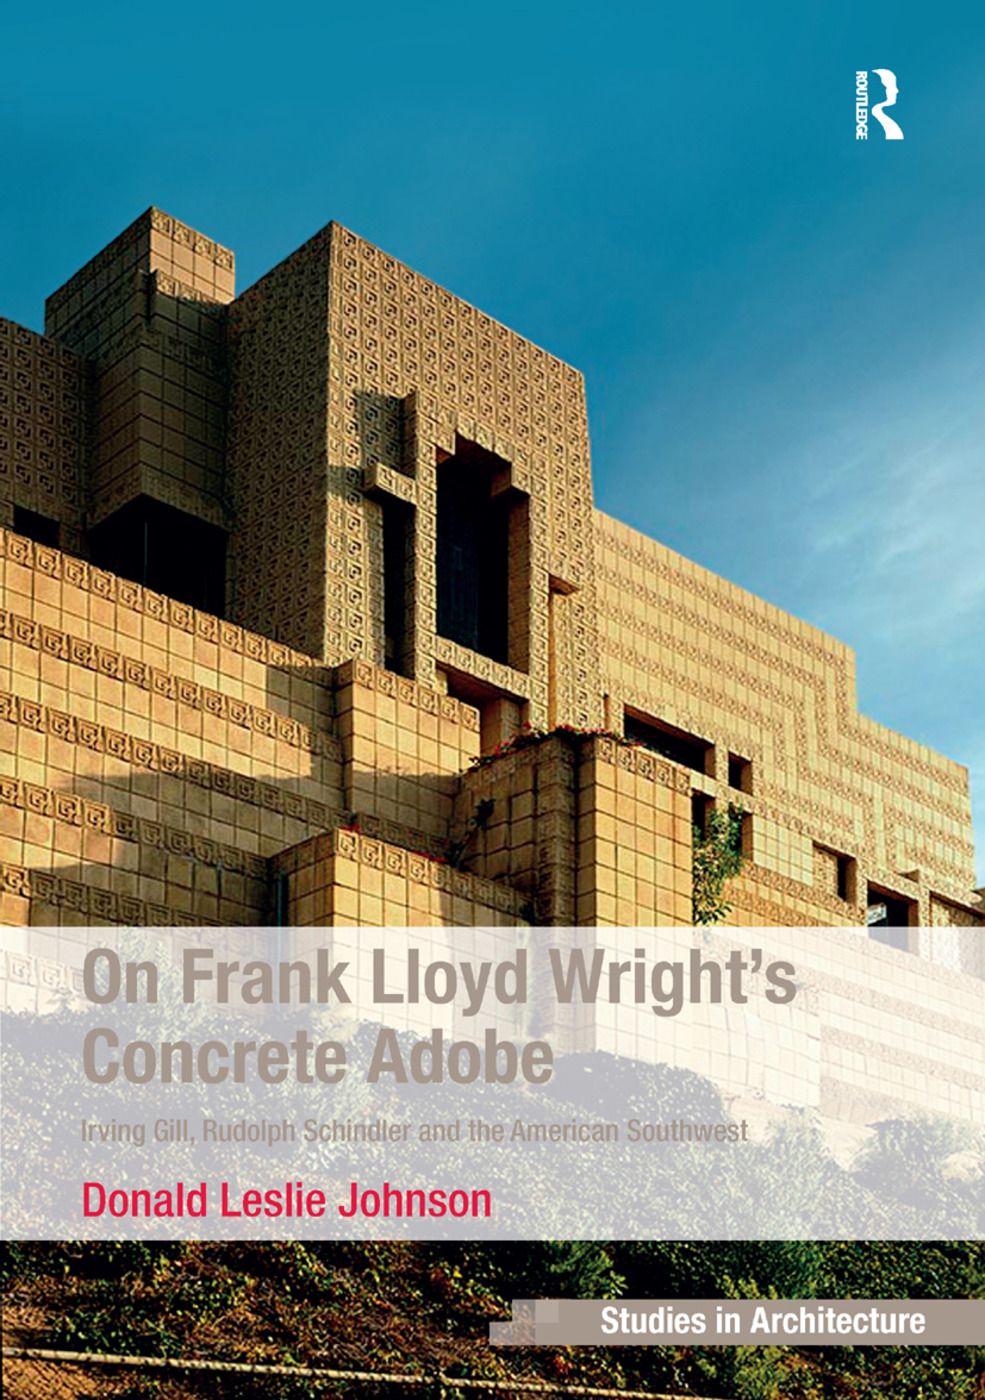 On Frank Lloyd Wright's Concrete Adobe: Irving Gill, Rudolph Schindler and the American Southwest book cover